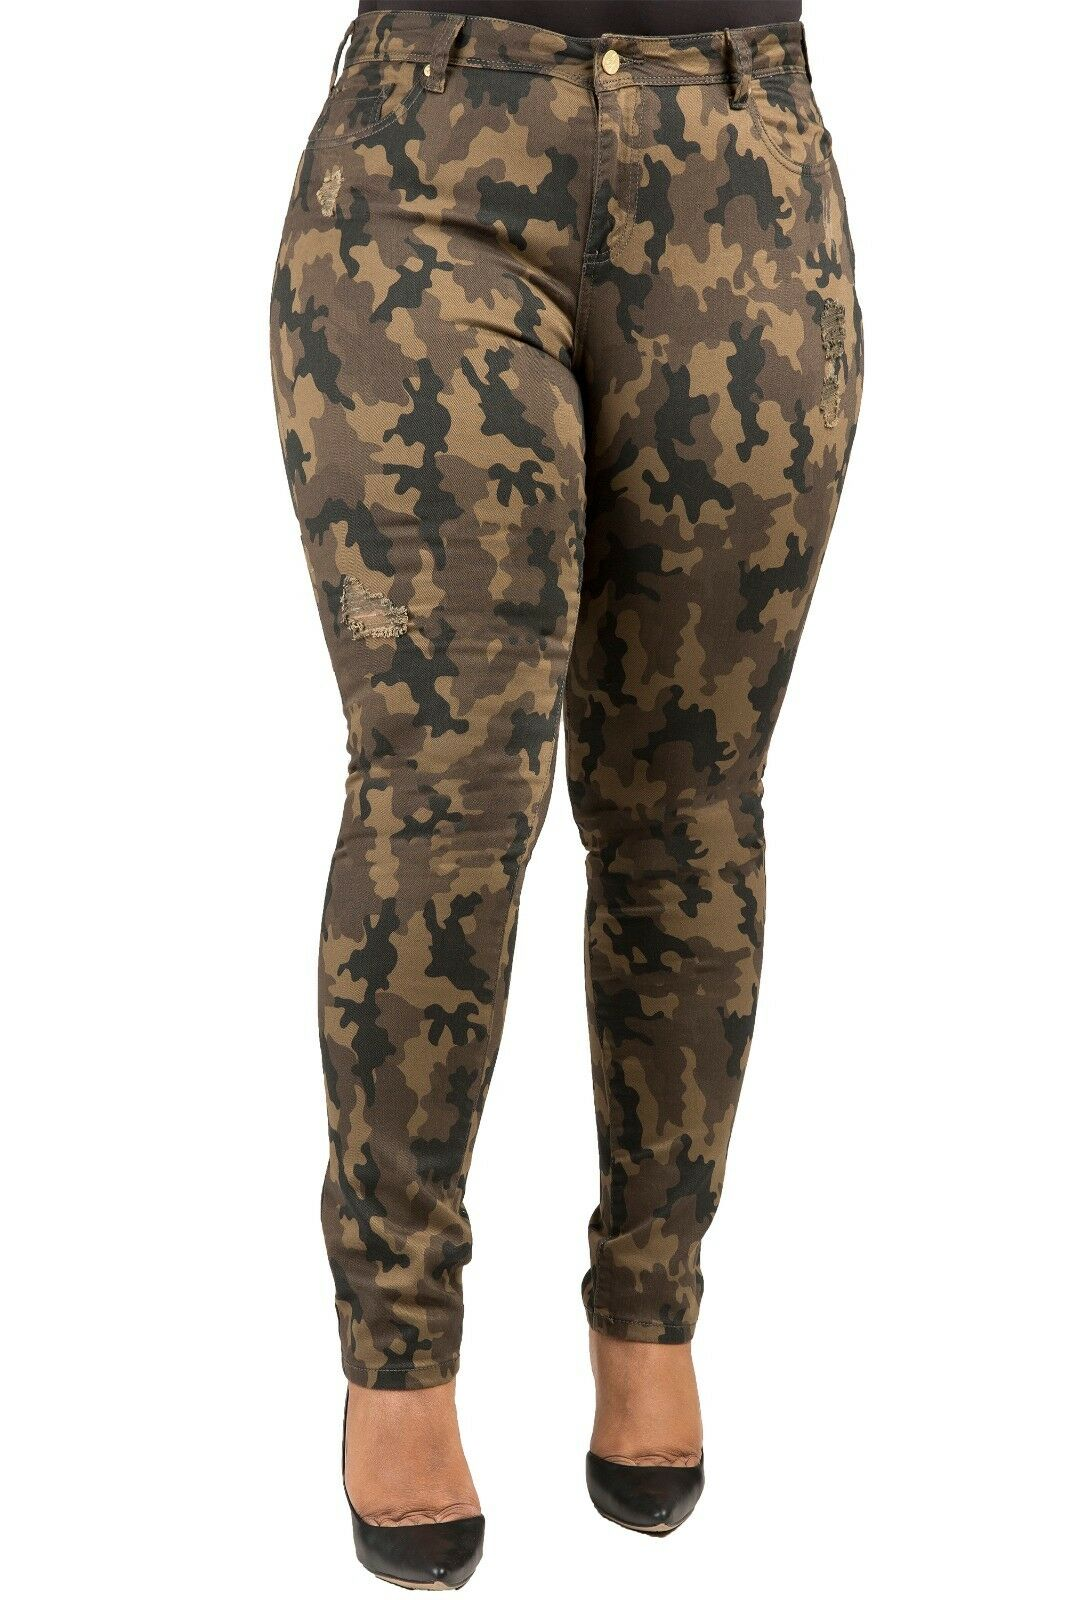 Poetic Justice Plus Size Women's Curvy Fit Camo Stretch Twill Destroyed Jeans